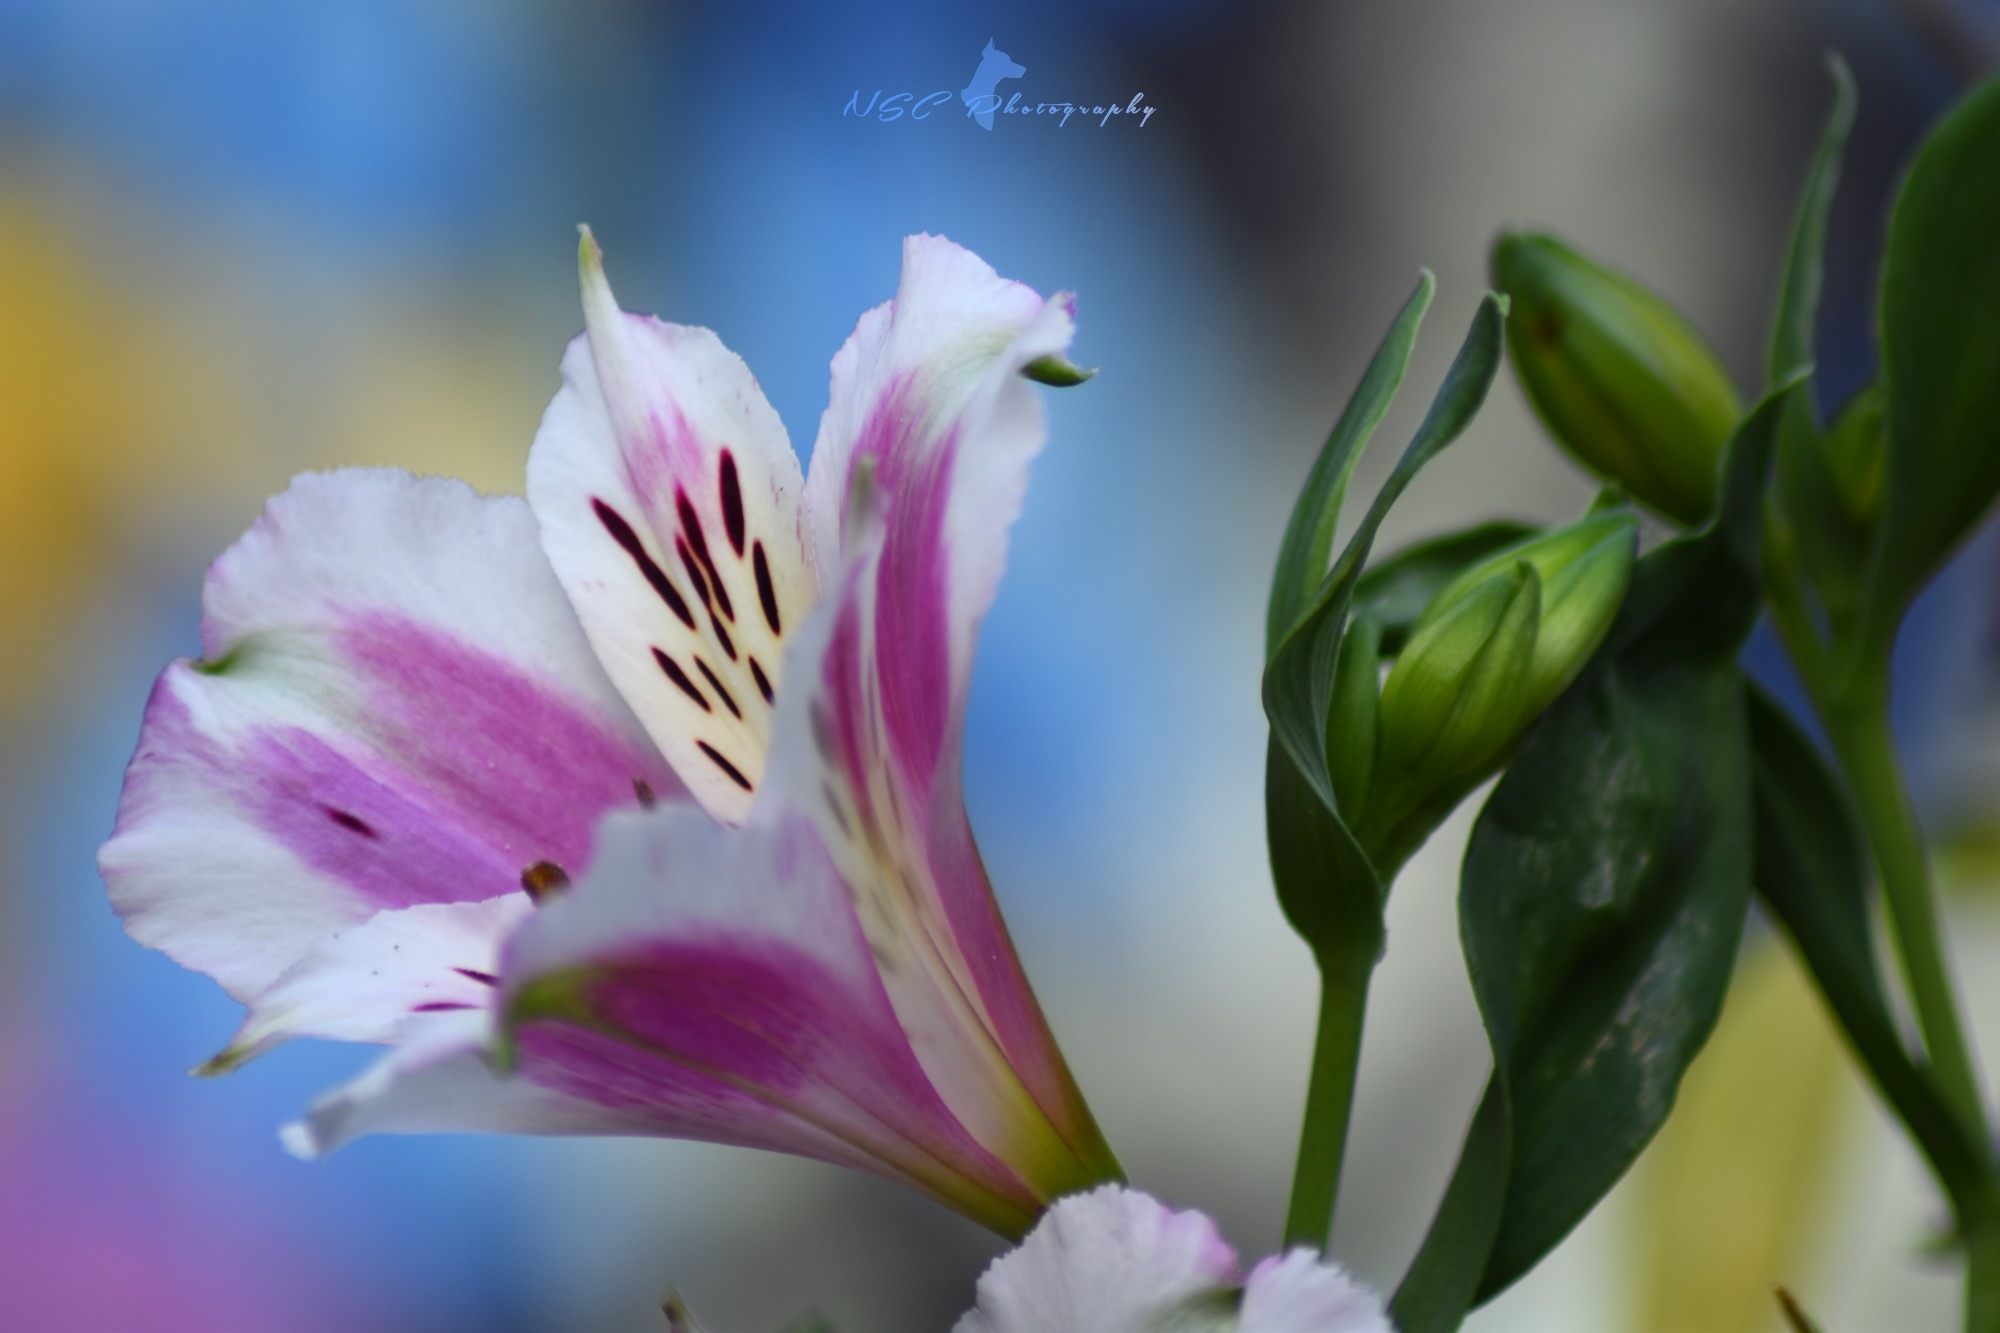 The Alstroemeria or white flower with pink cheeks by NSC Photography